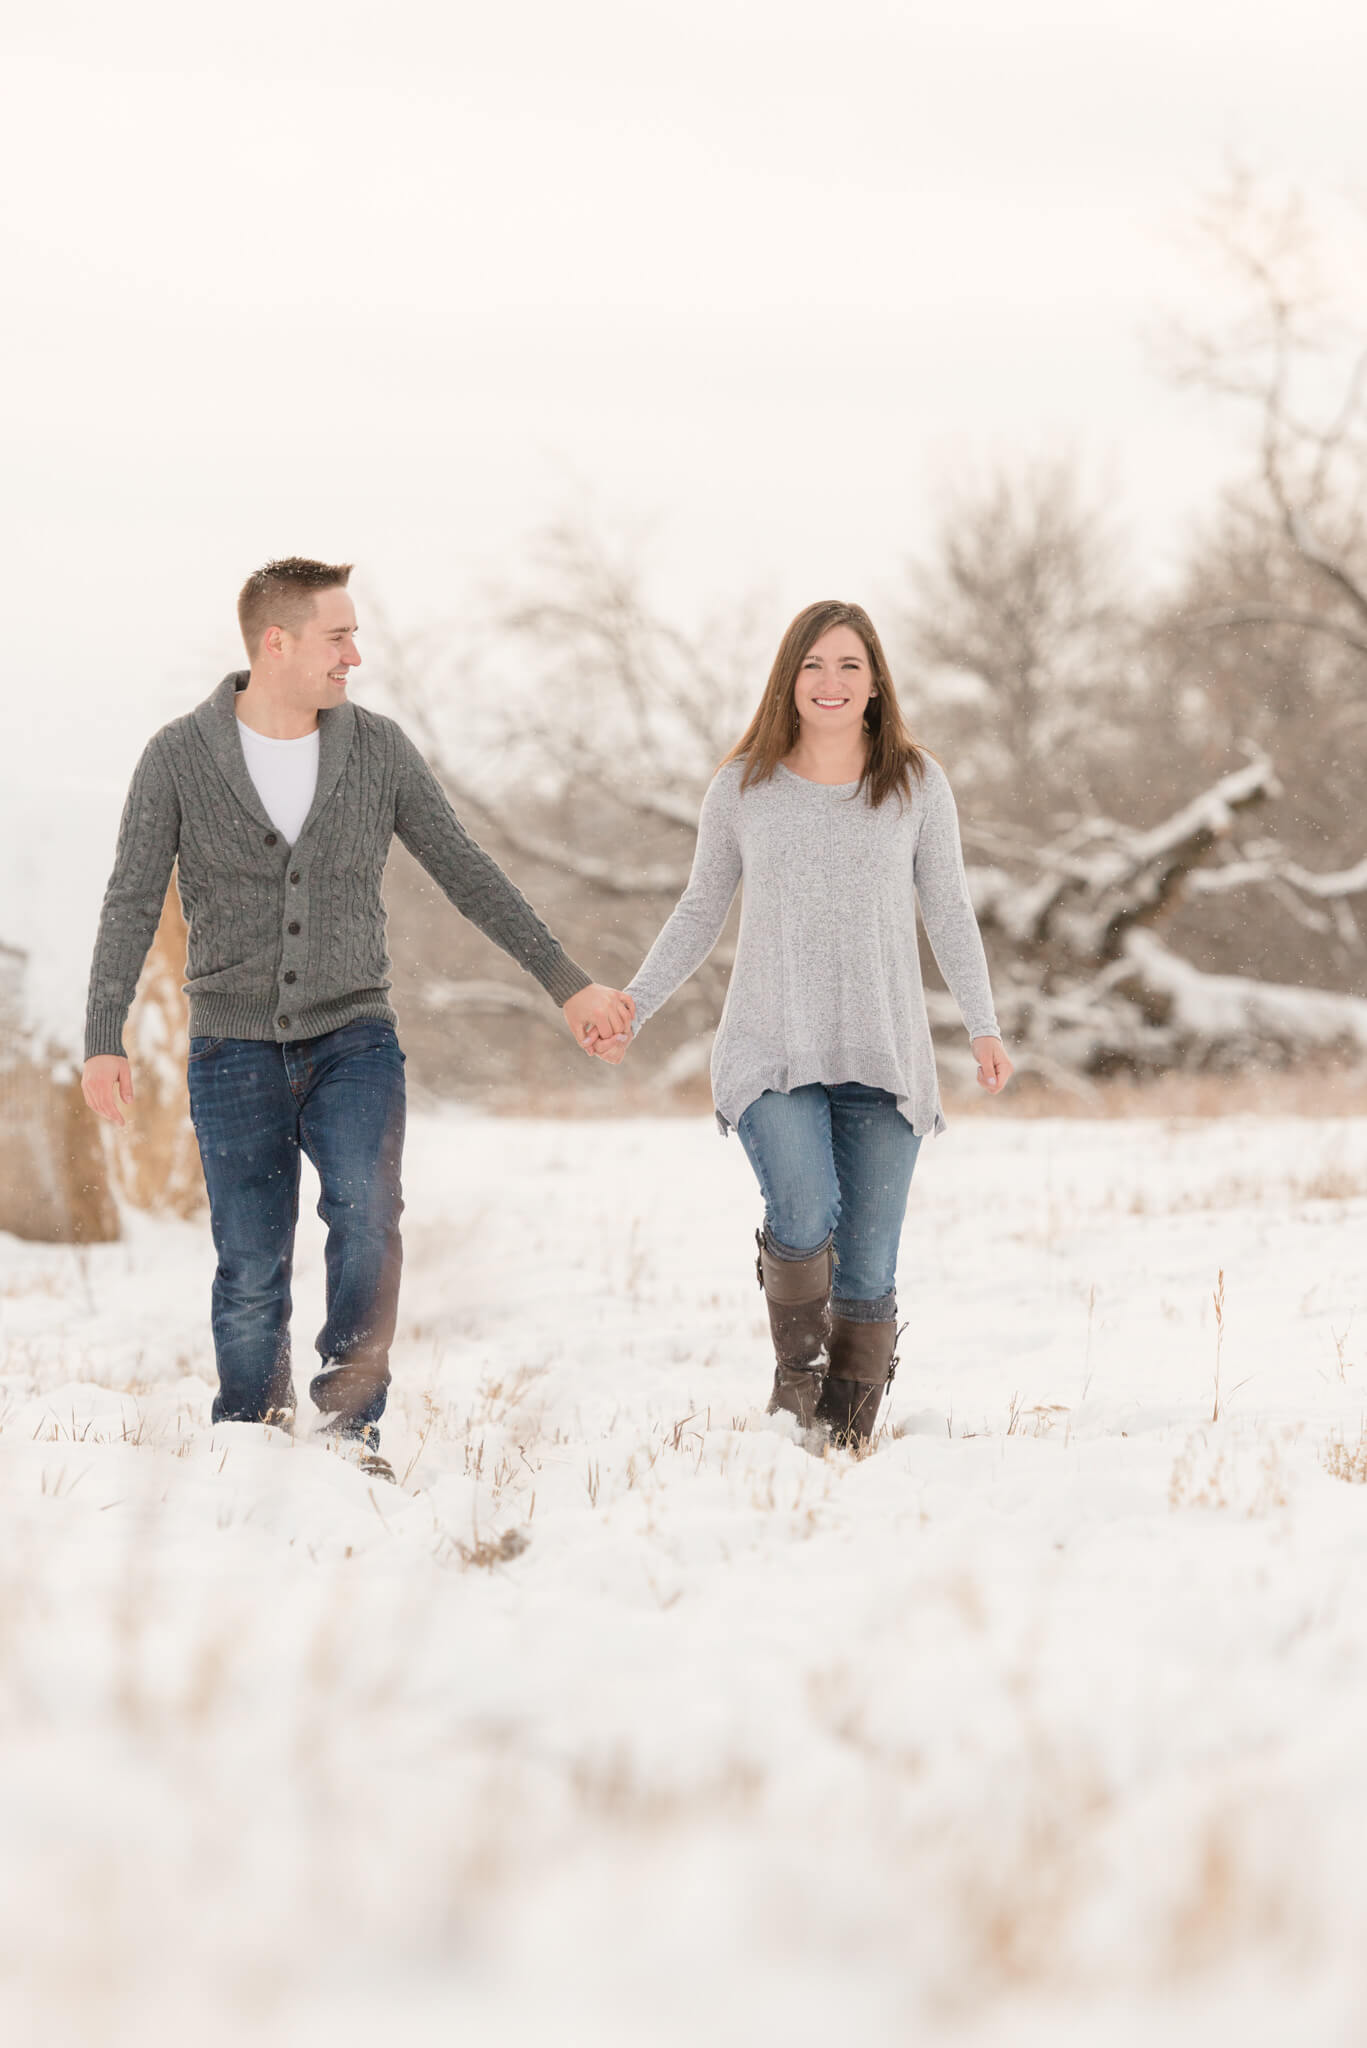 Couple walks hand in hand through the snow